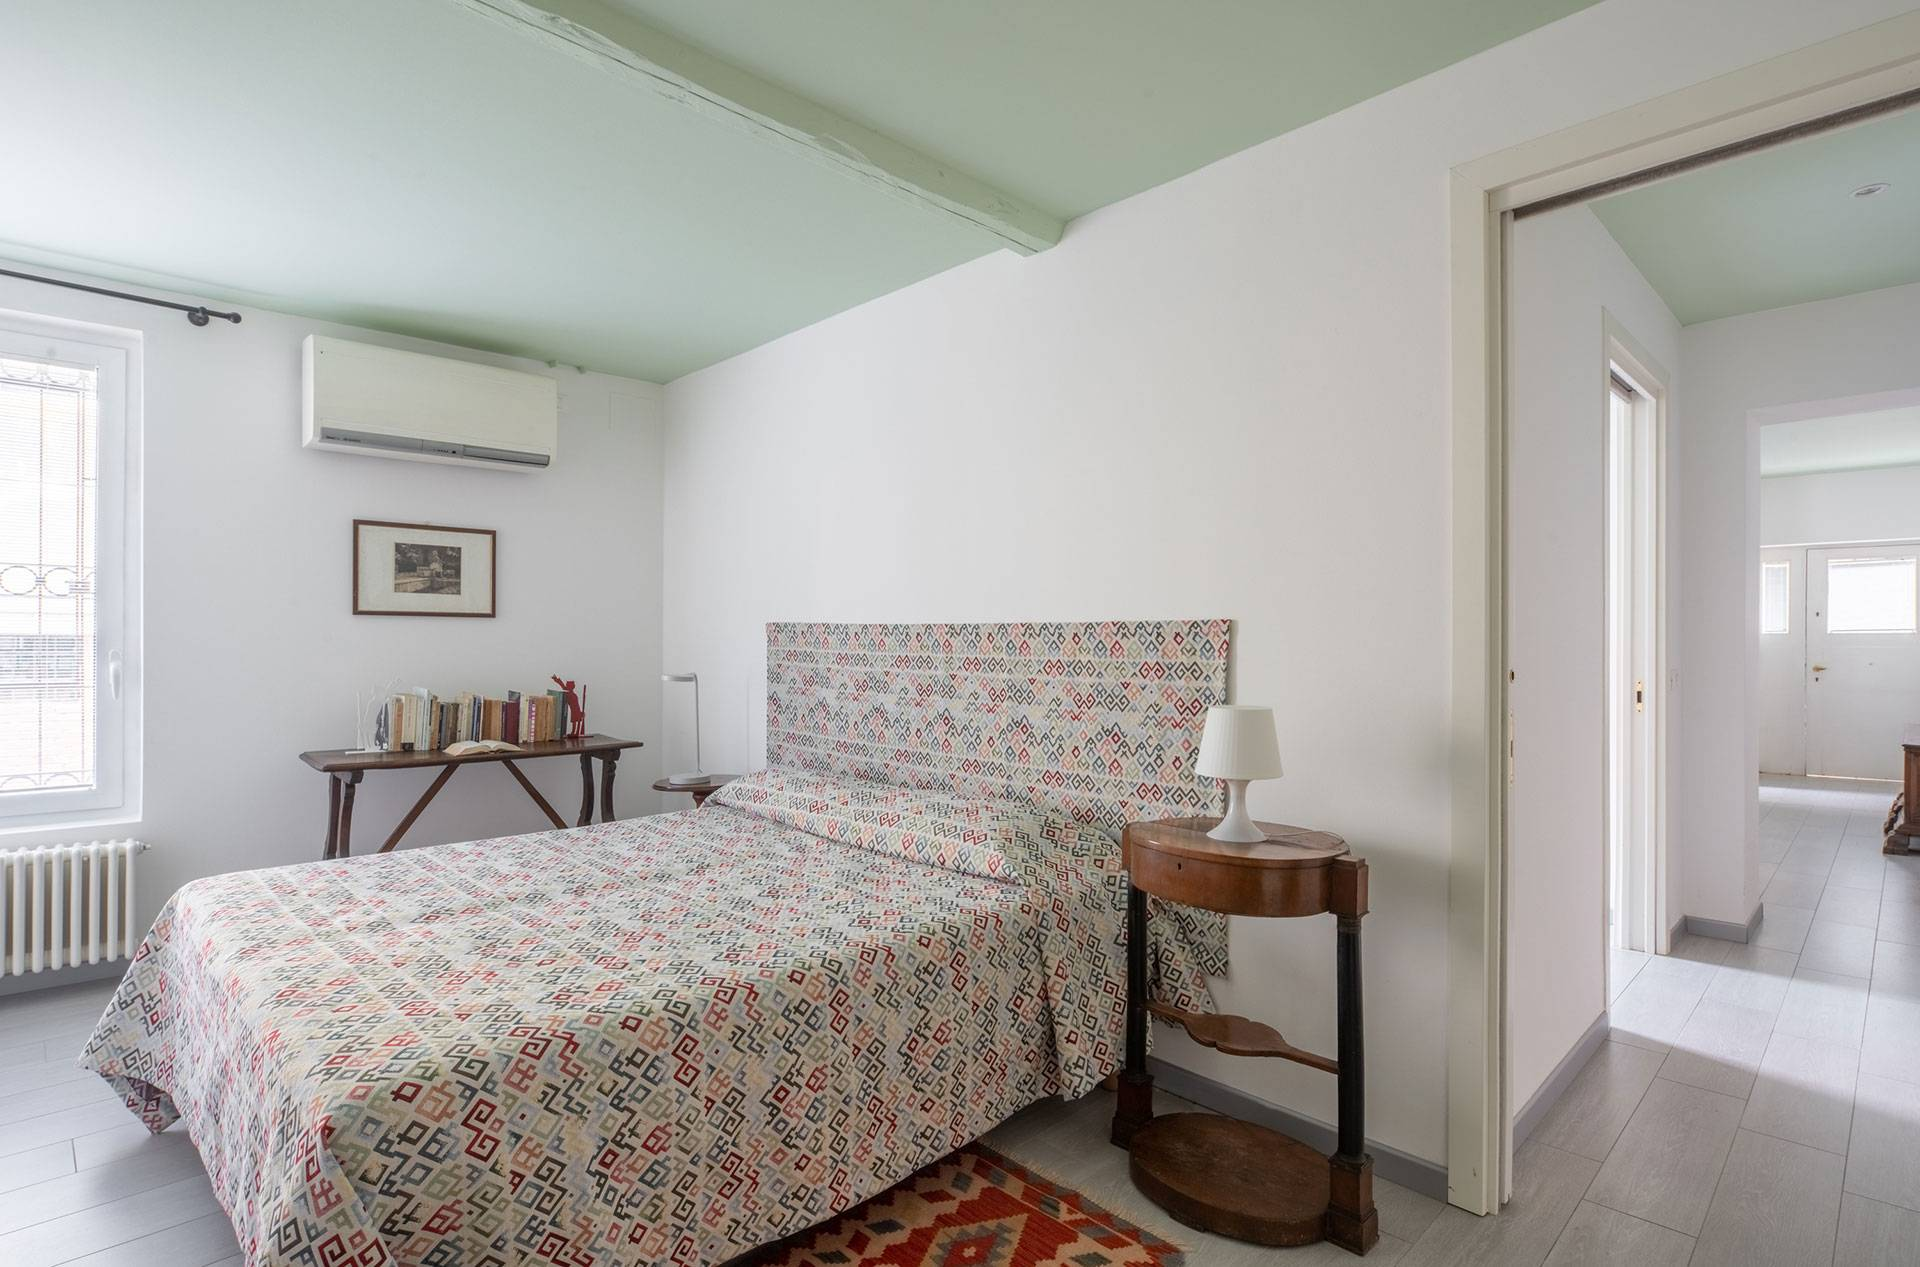 spacious double bedroom with king size bed and antique furniture